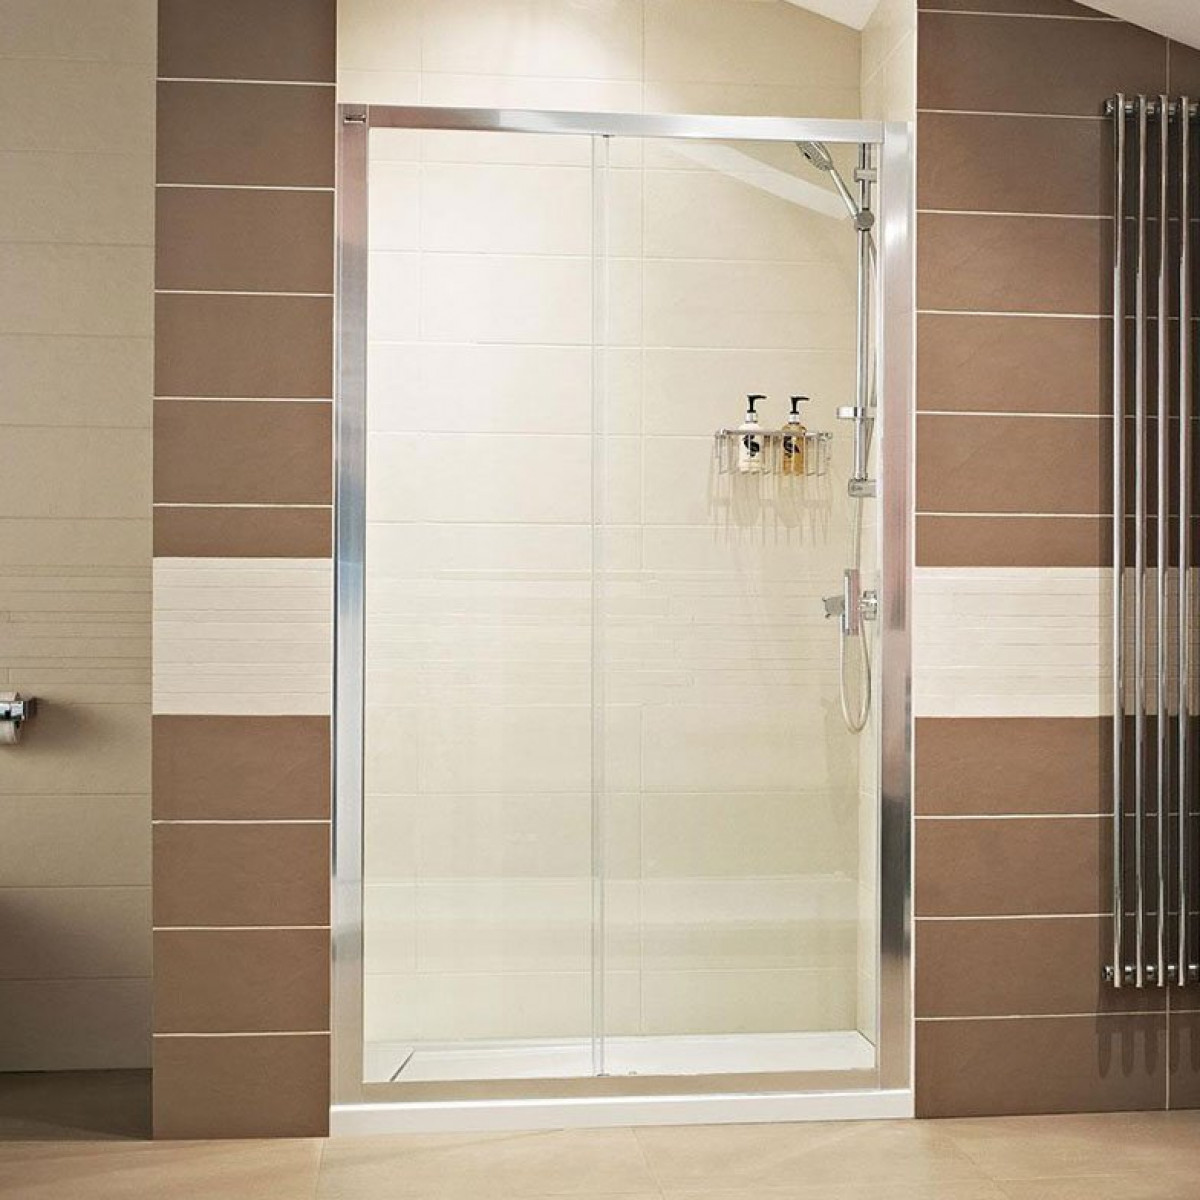 Roman Lumin8 1400mm Sliding Shower Door V8t1413s